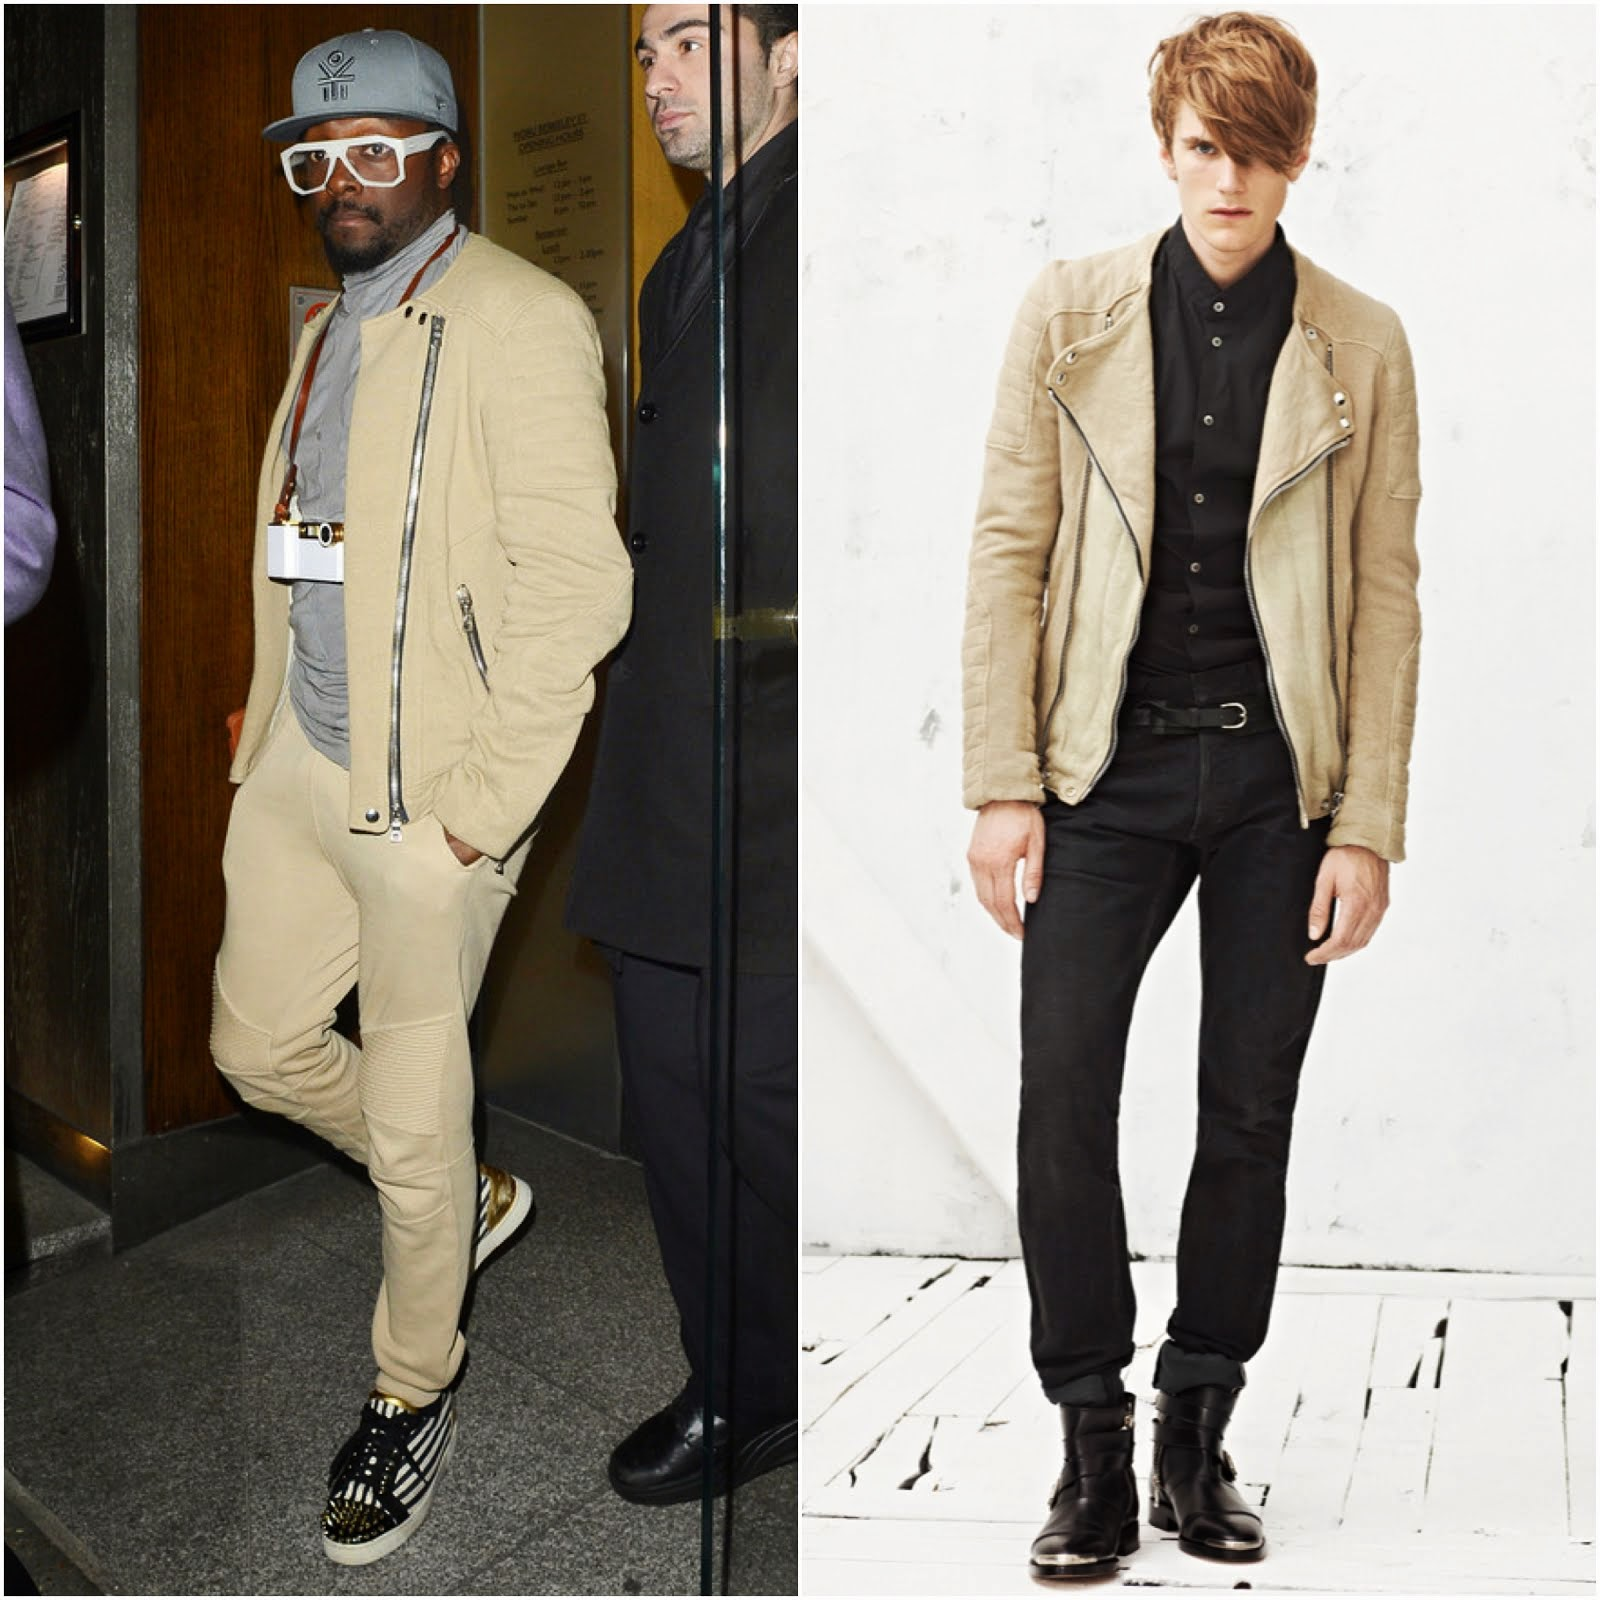 00O00 Menswear Blog: Will.i.am in Balmain Homme - London Street Style June 2013